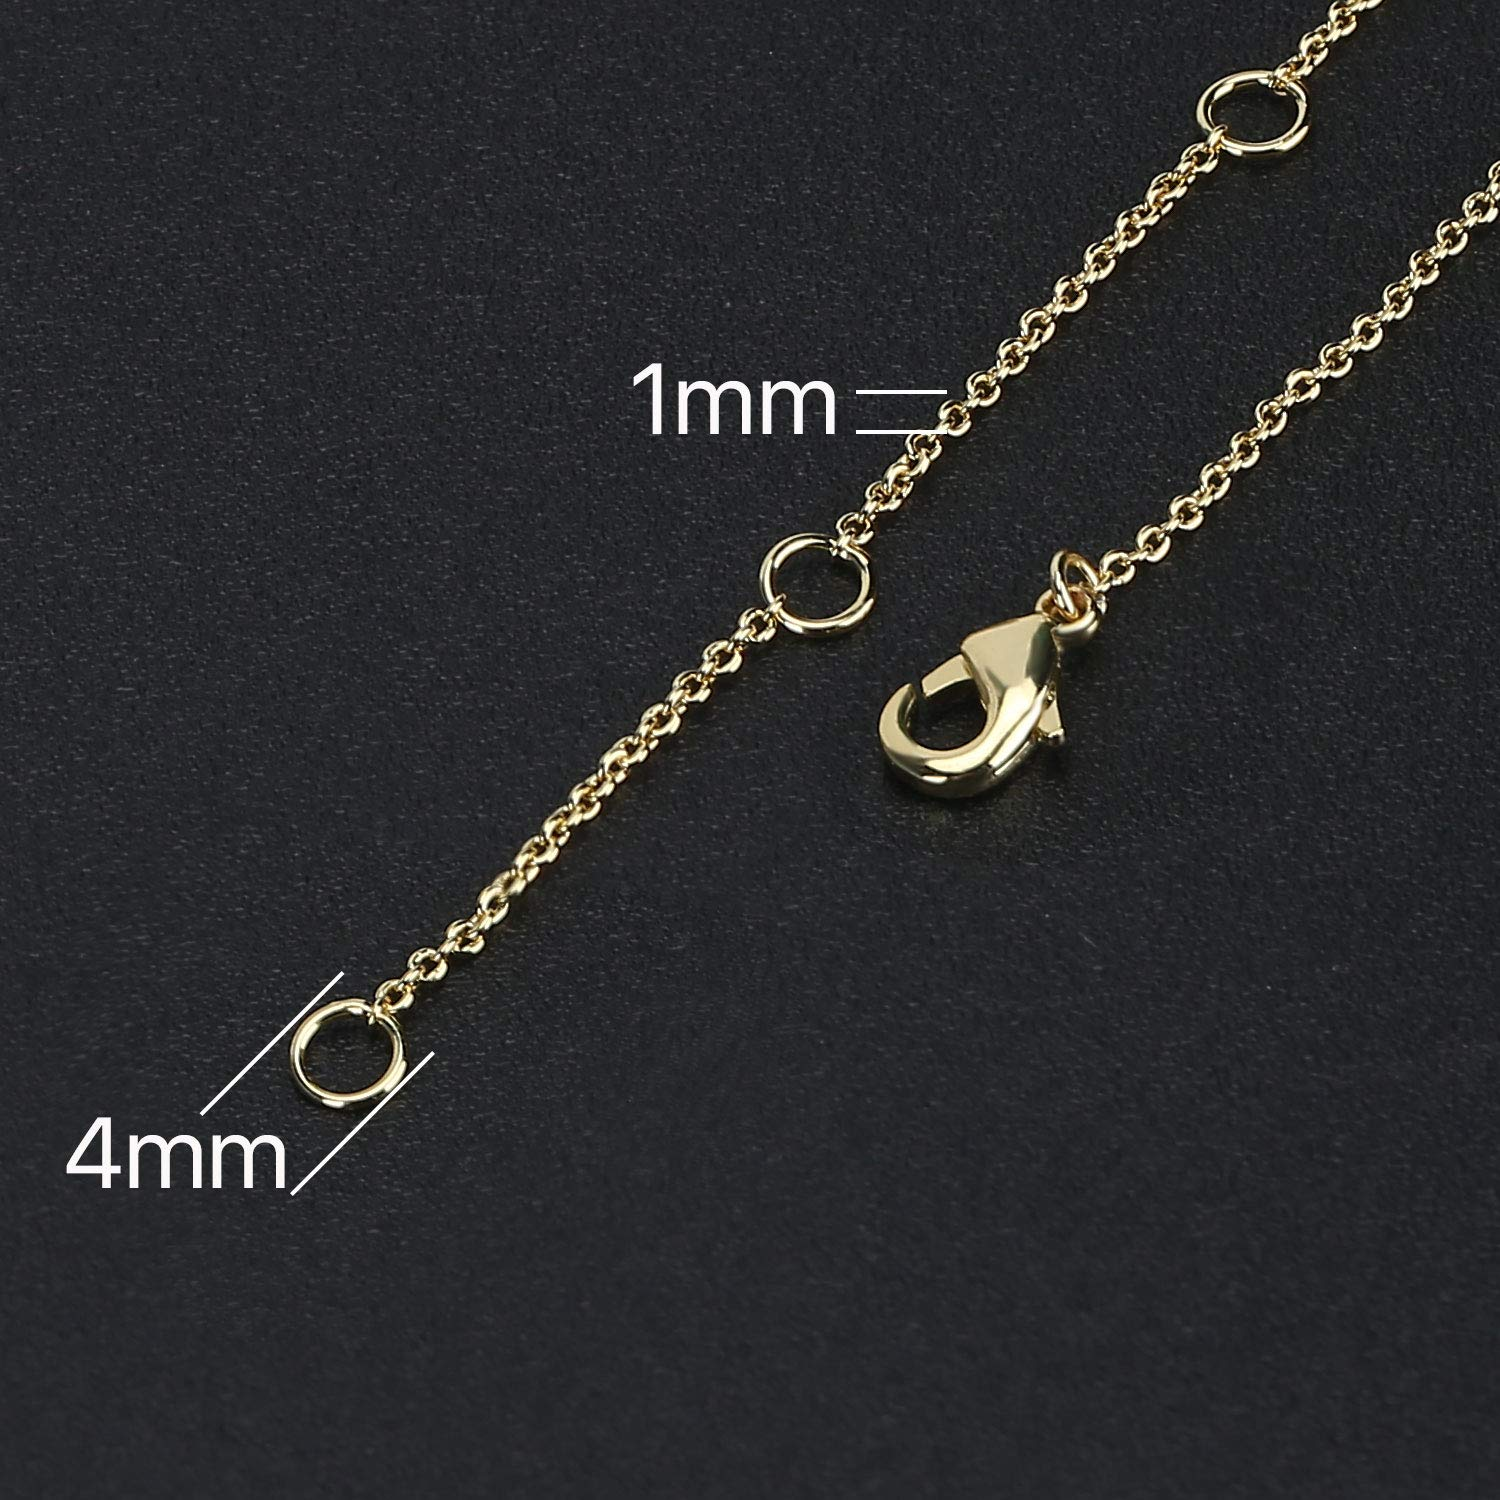 Wholesale 12 PCS 14K Real Gold Plated Solid Brass Thin O Chain Necklace 1 MM Finished Chain Bulk for Jewelry Making by SPUNKYCHARMS (Image #3)